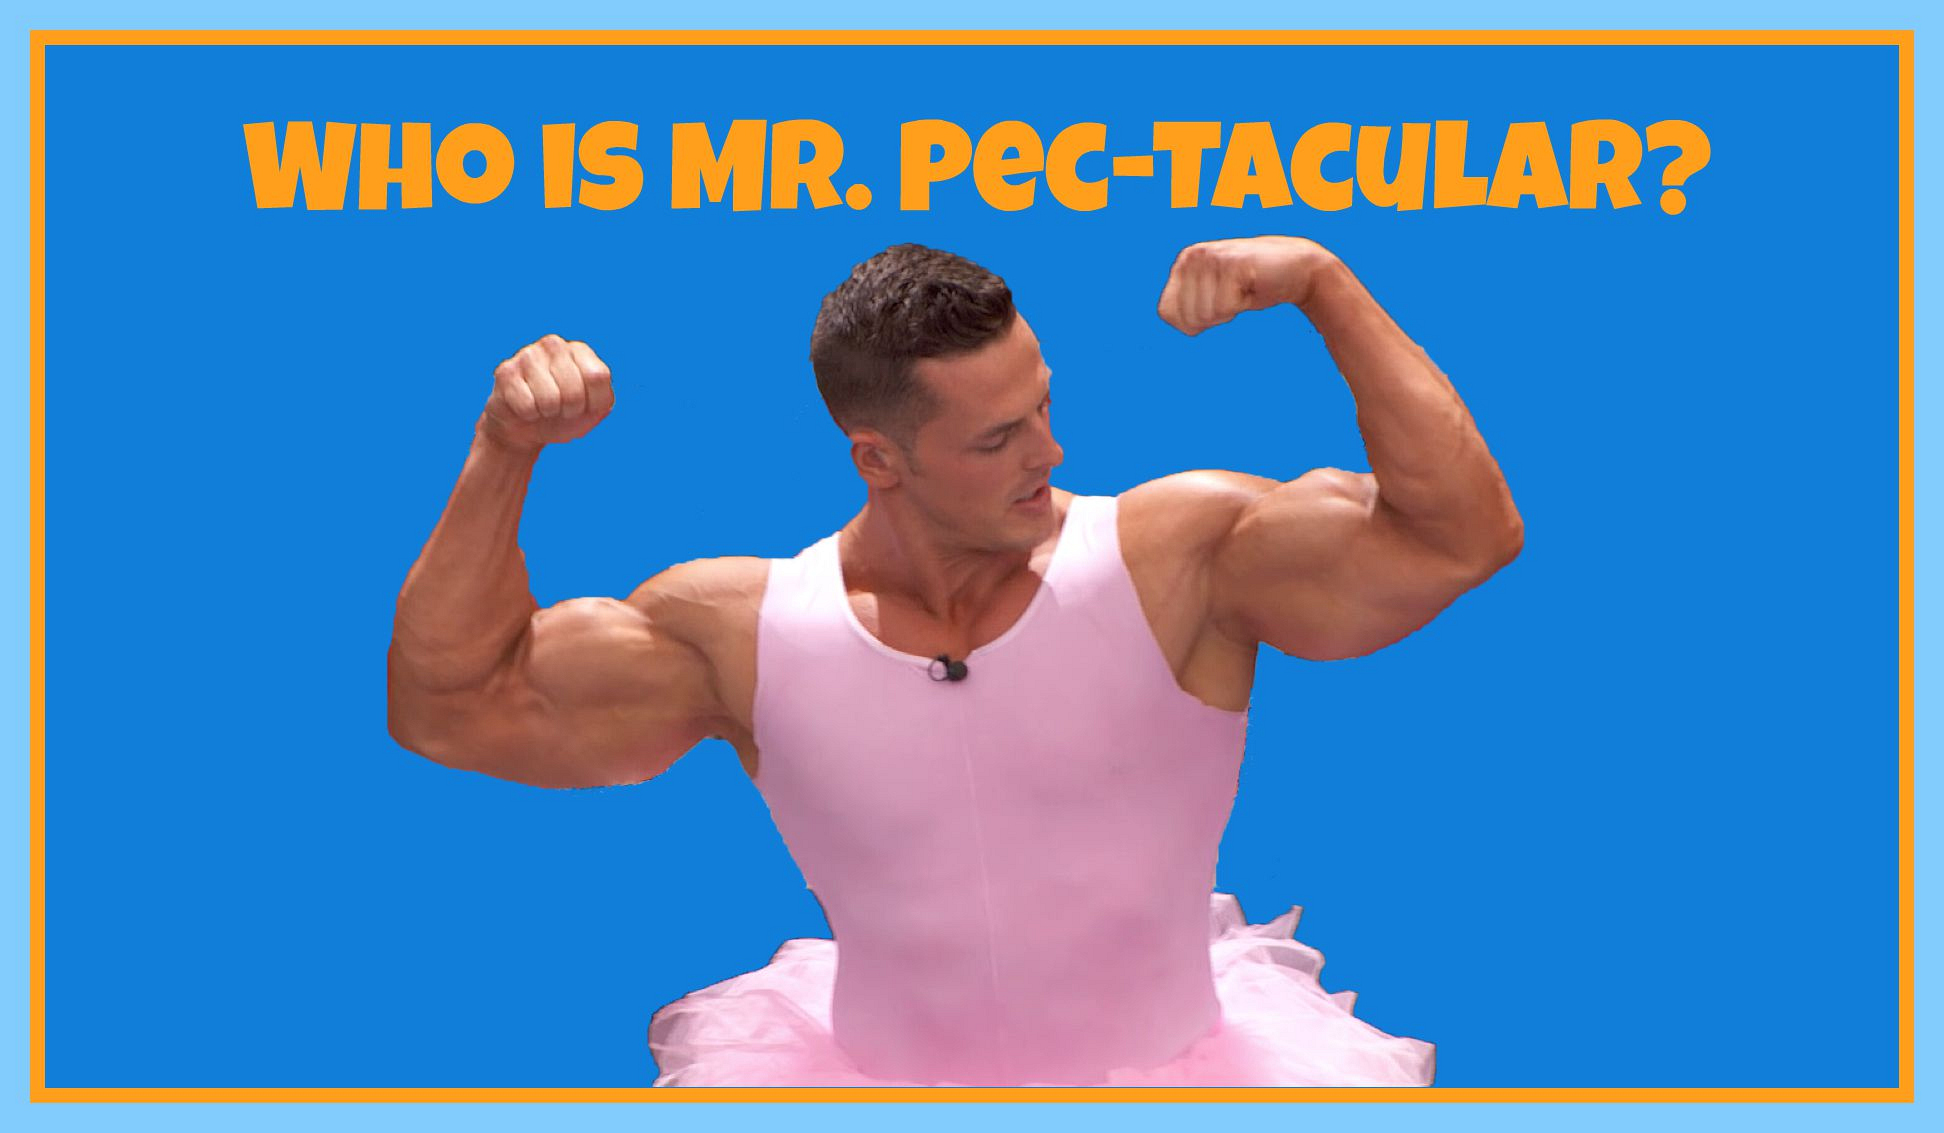 Who is Mr. PEC-Tacular?